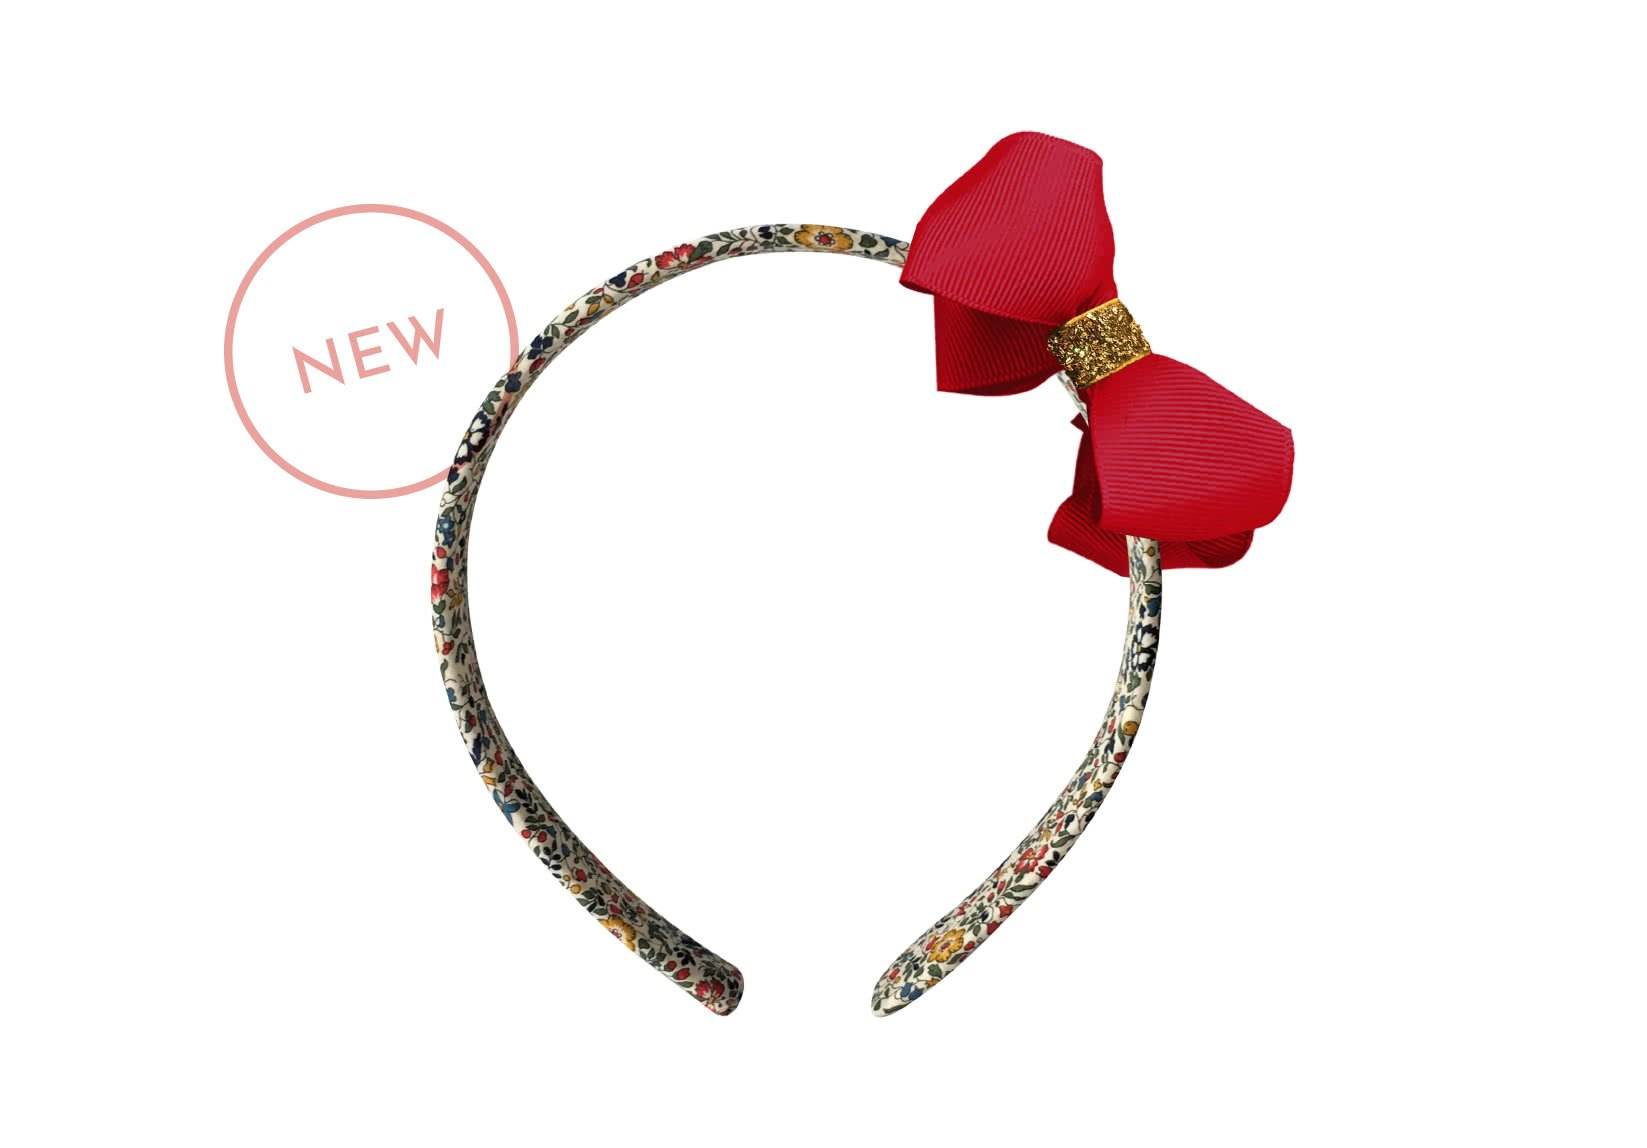 Liberty Hairband – Medium Grosgrain Boutique Bow with Gold Middle